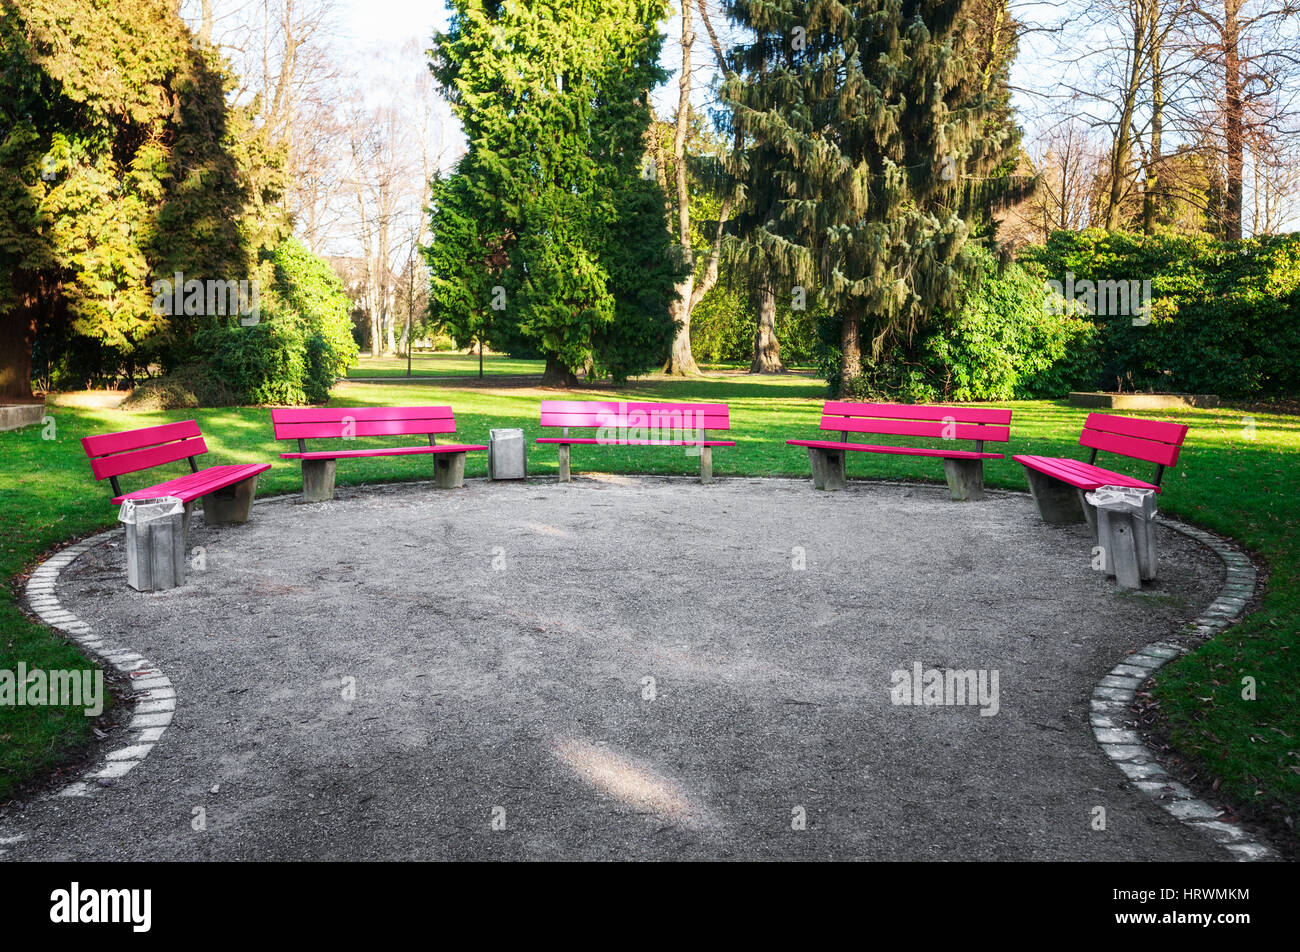 Awe Inspiring Pink Benches In City Park February Landscape With Green Machost Co Dining Chair Design Ideas Machostcouk